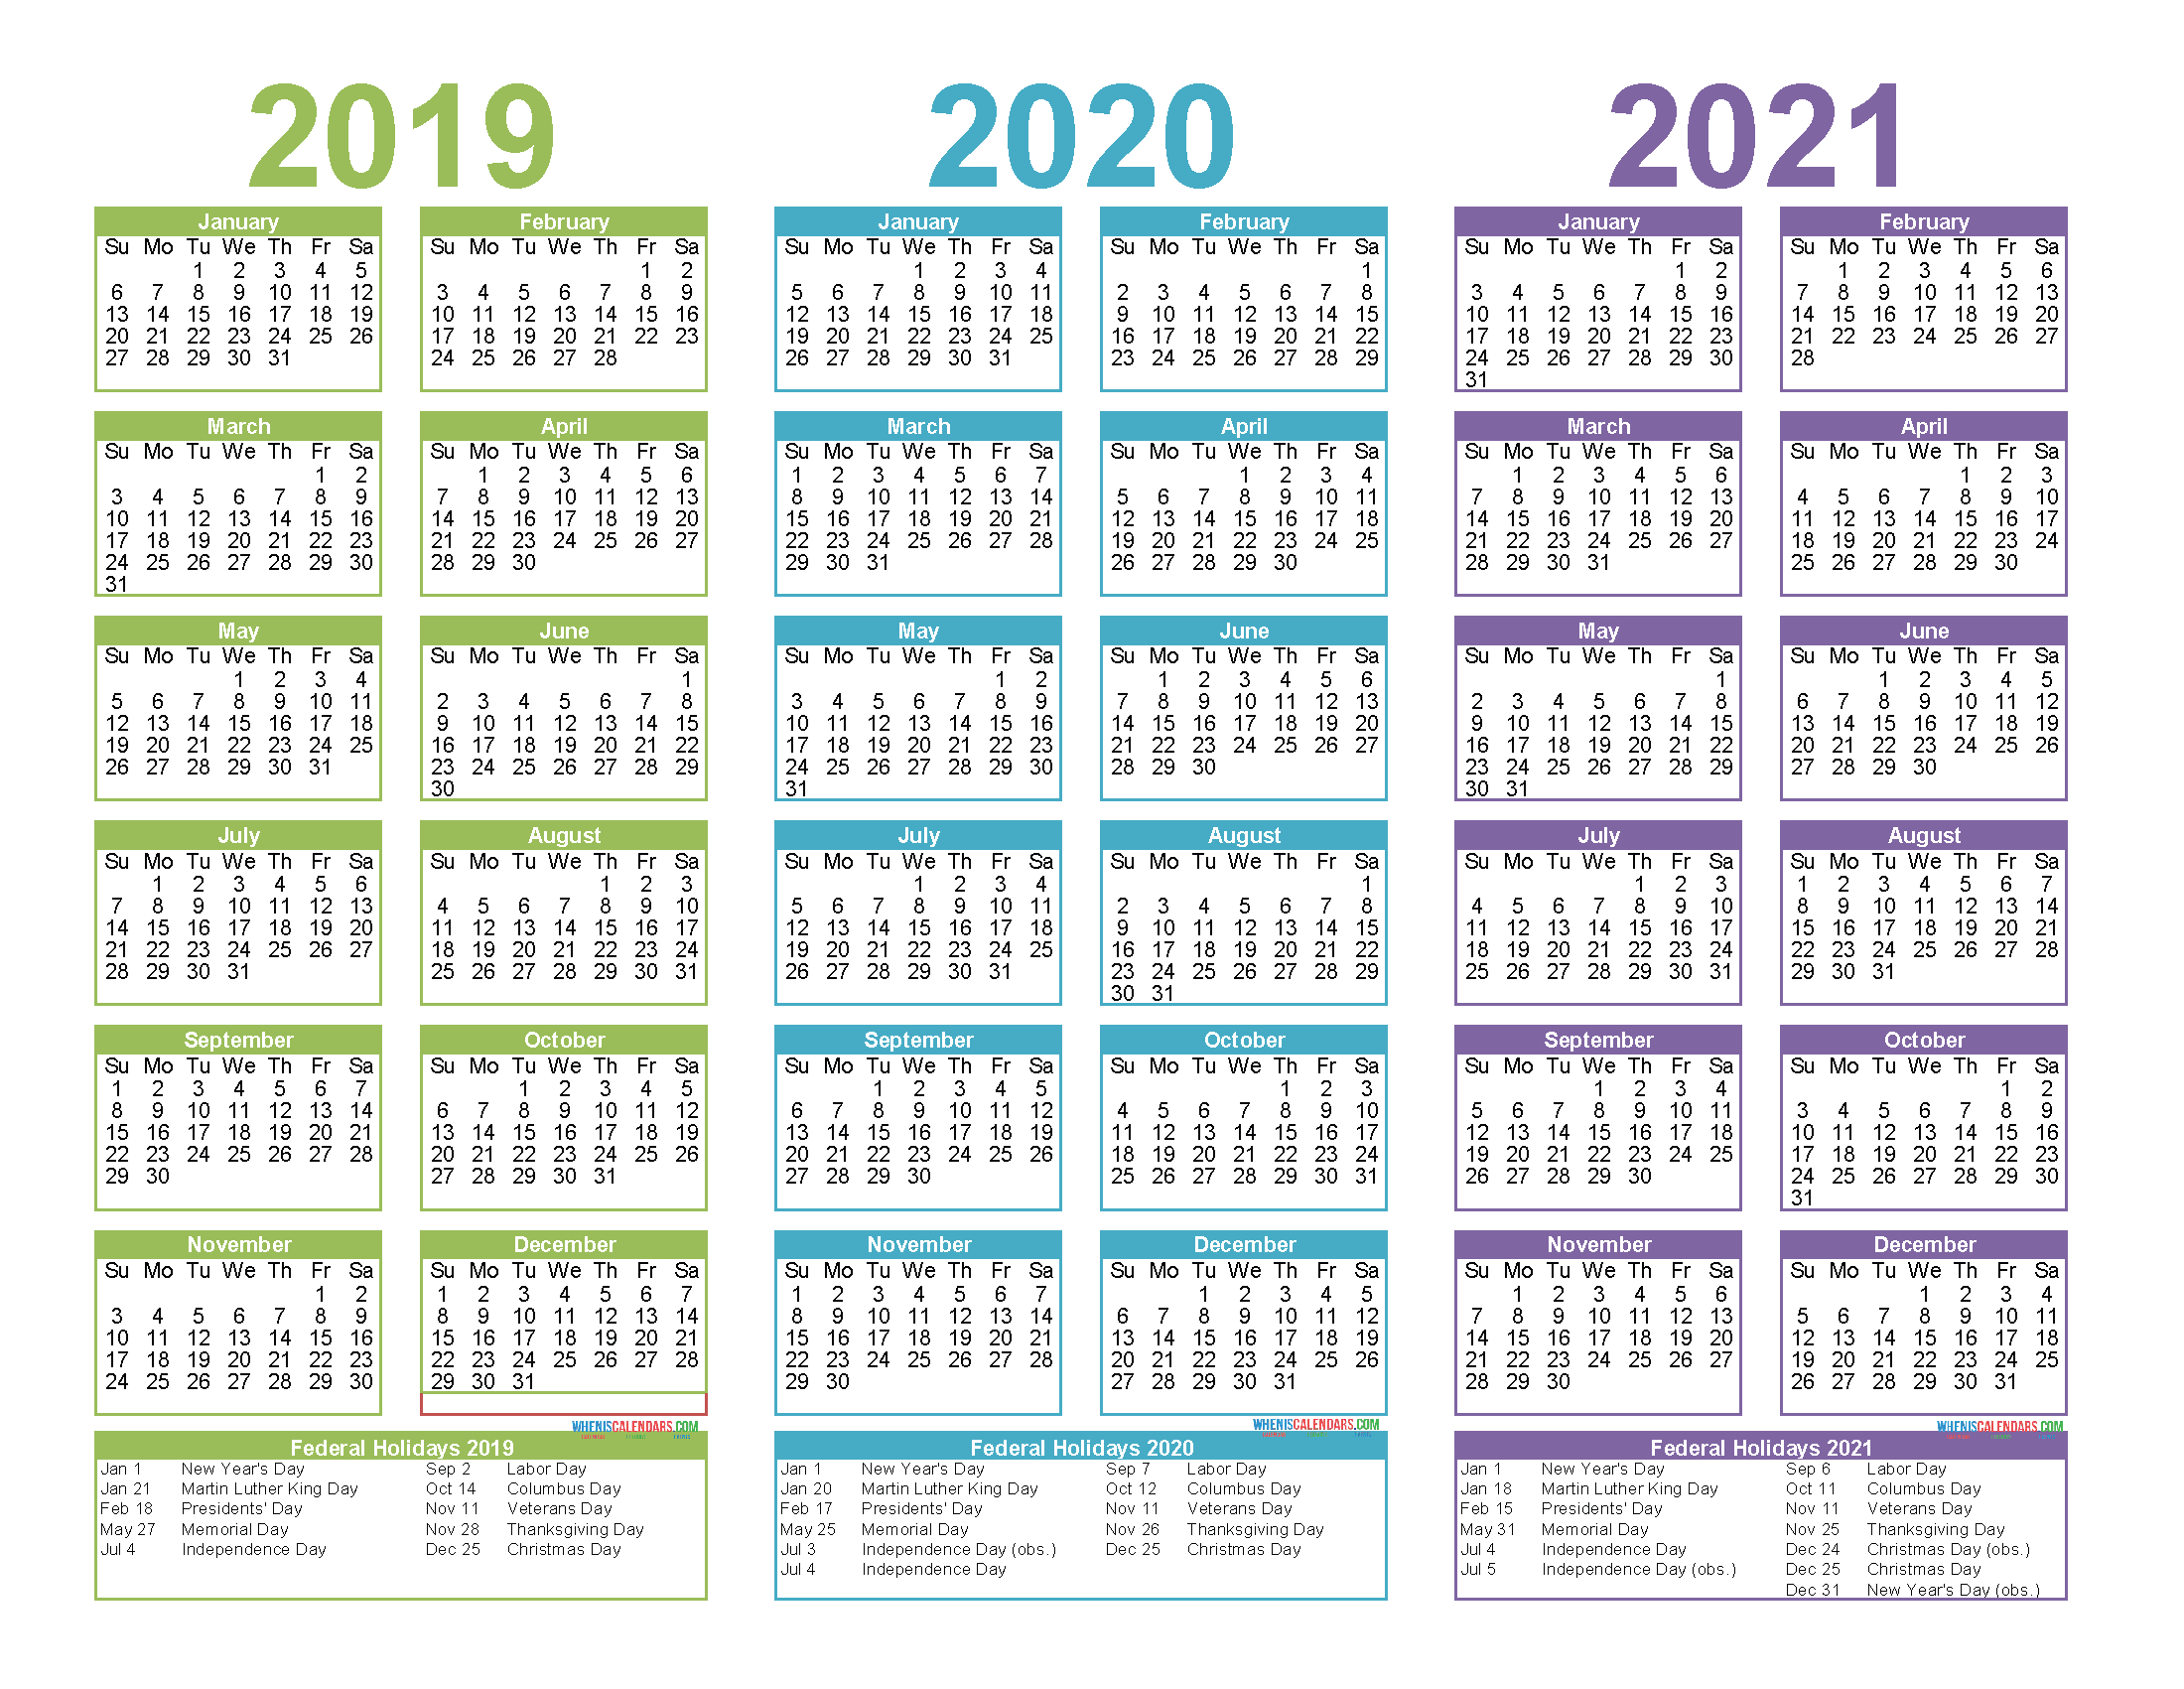 2019 To 2021 3 Year Calendar Printable Free Pdf, Word, Image for Three Year Calendar Printable